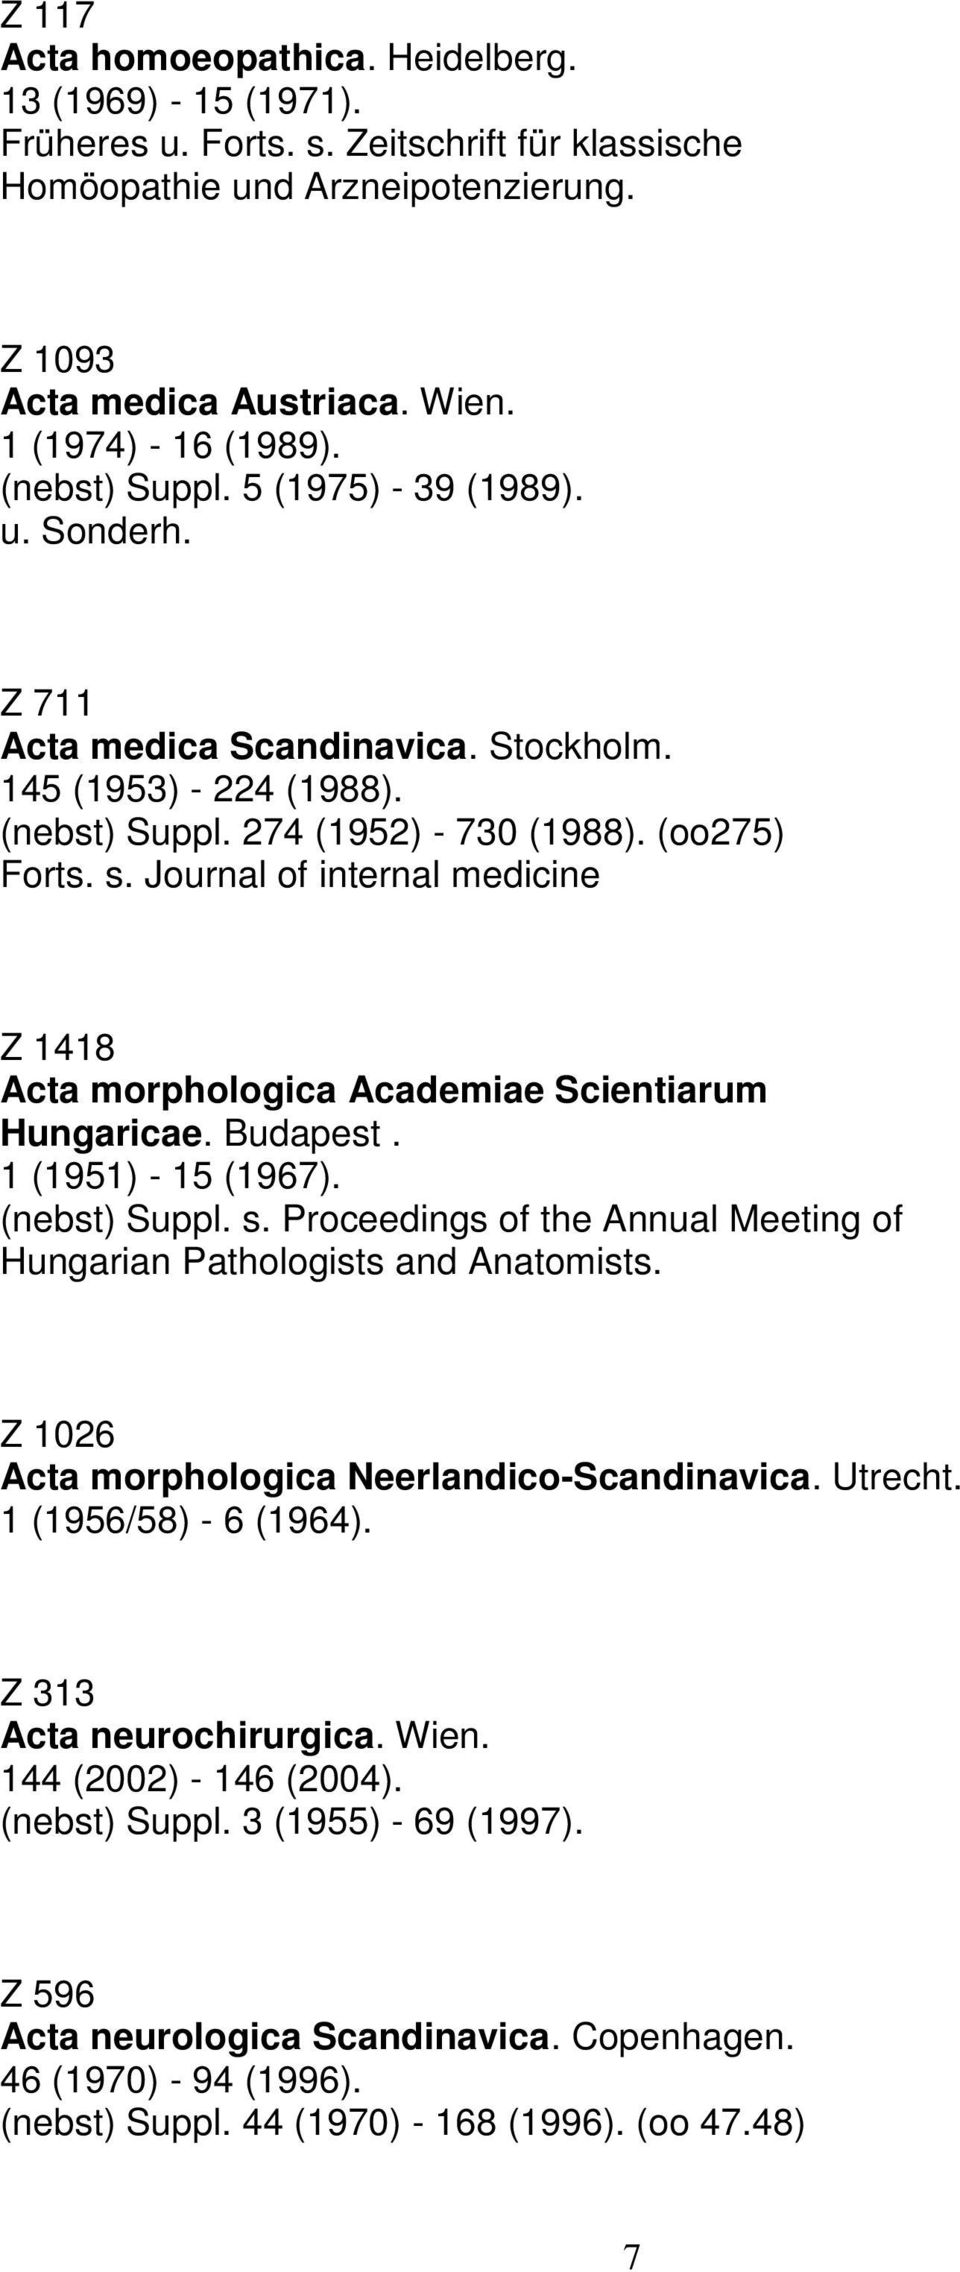 Journal of internal medicine Z 1418 Acta morphologica Academiae Scientiarum Hungaricae. Budapest. 1 (1951) - 15 (1967). s. Proceedings of the Annual Meeting of Hungarian Pathologists and Anatomists.